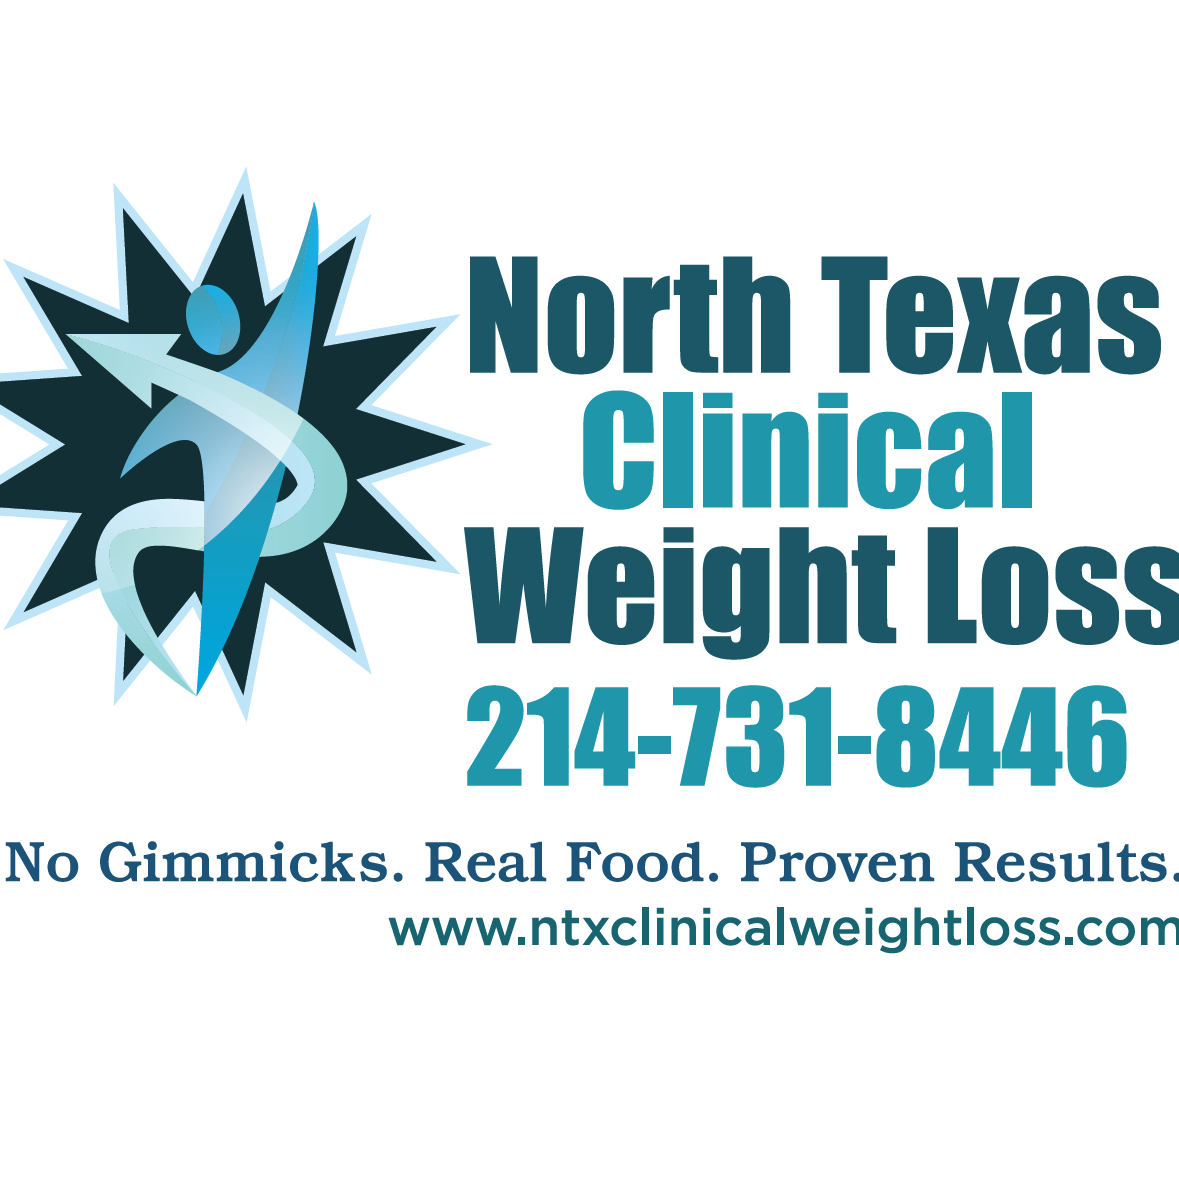 North Texas Clinical Weight Loss Coupons near me in ...